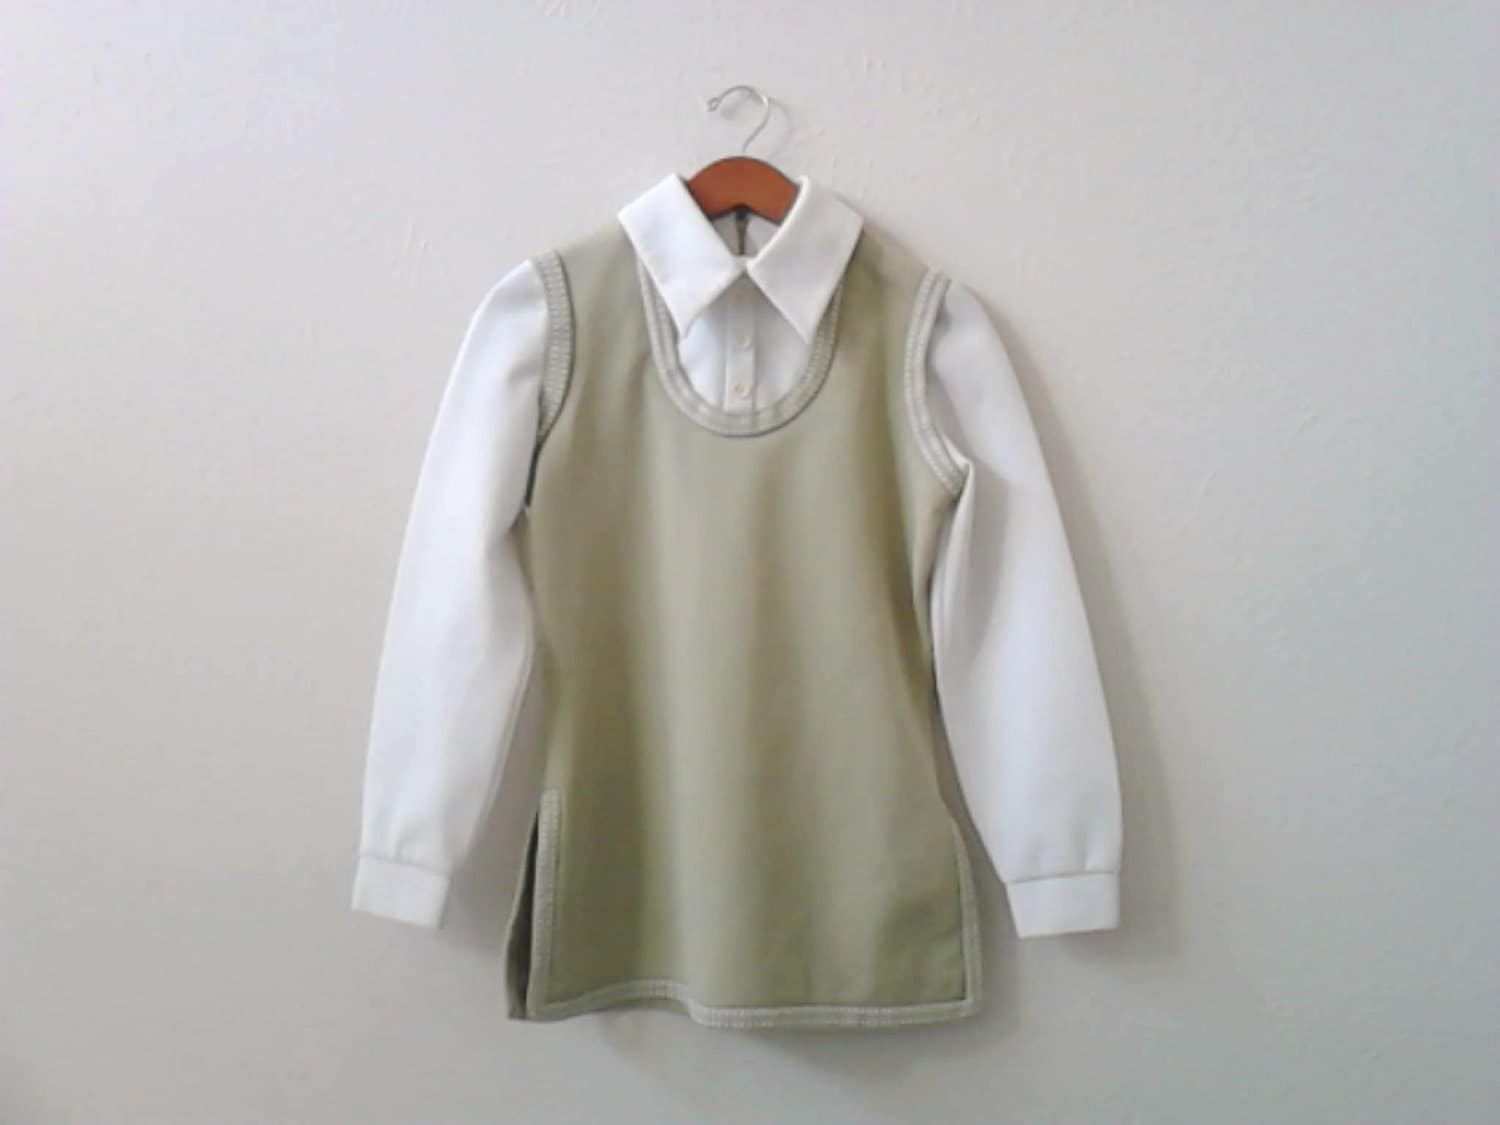 shirt tunic small pullover long sleeve olive green tan beige cream vintage - lillysshoppe